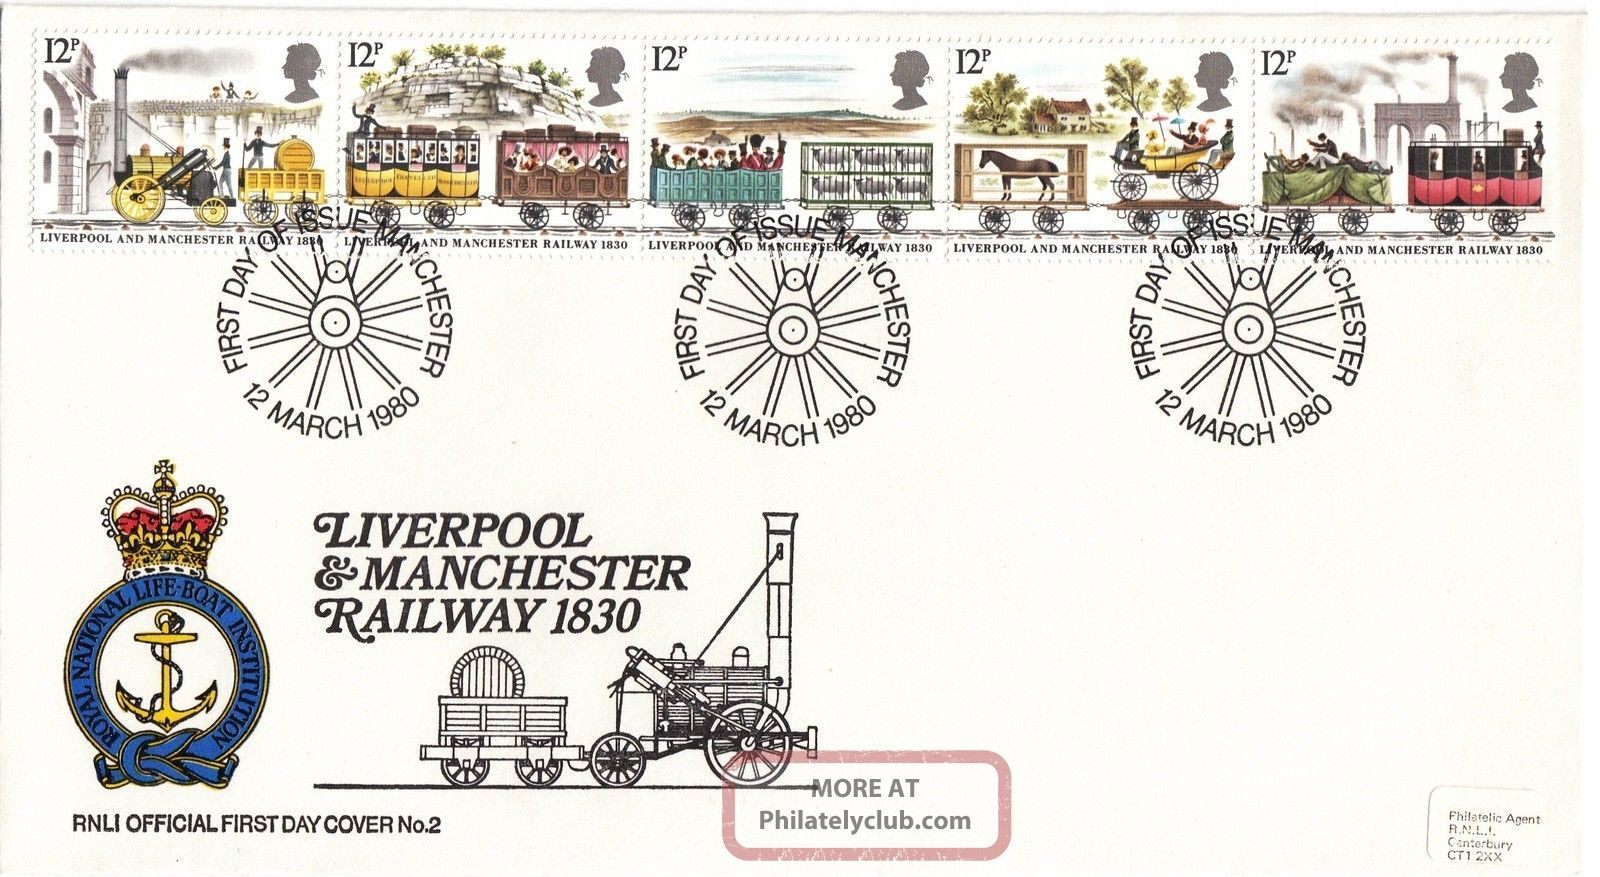 (28798) Gb Rnli Fdc Liverpool And Manchester Railway - Manchester 12 March 1980 1971-Now photo